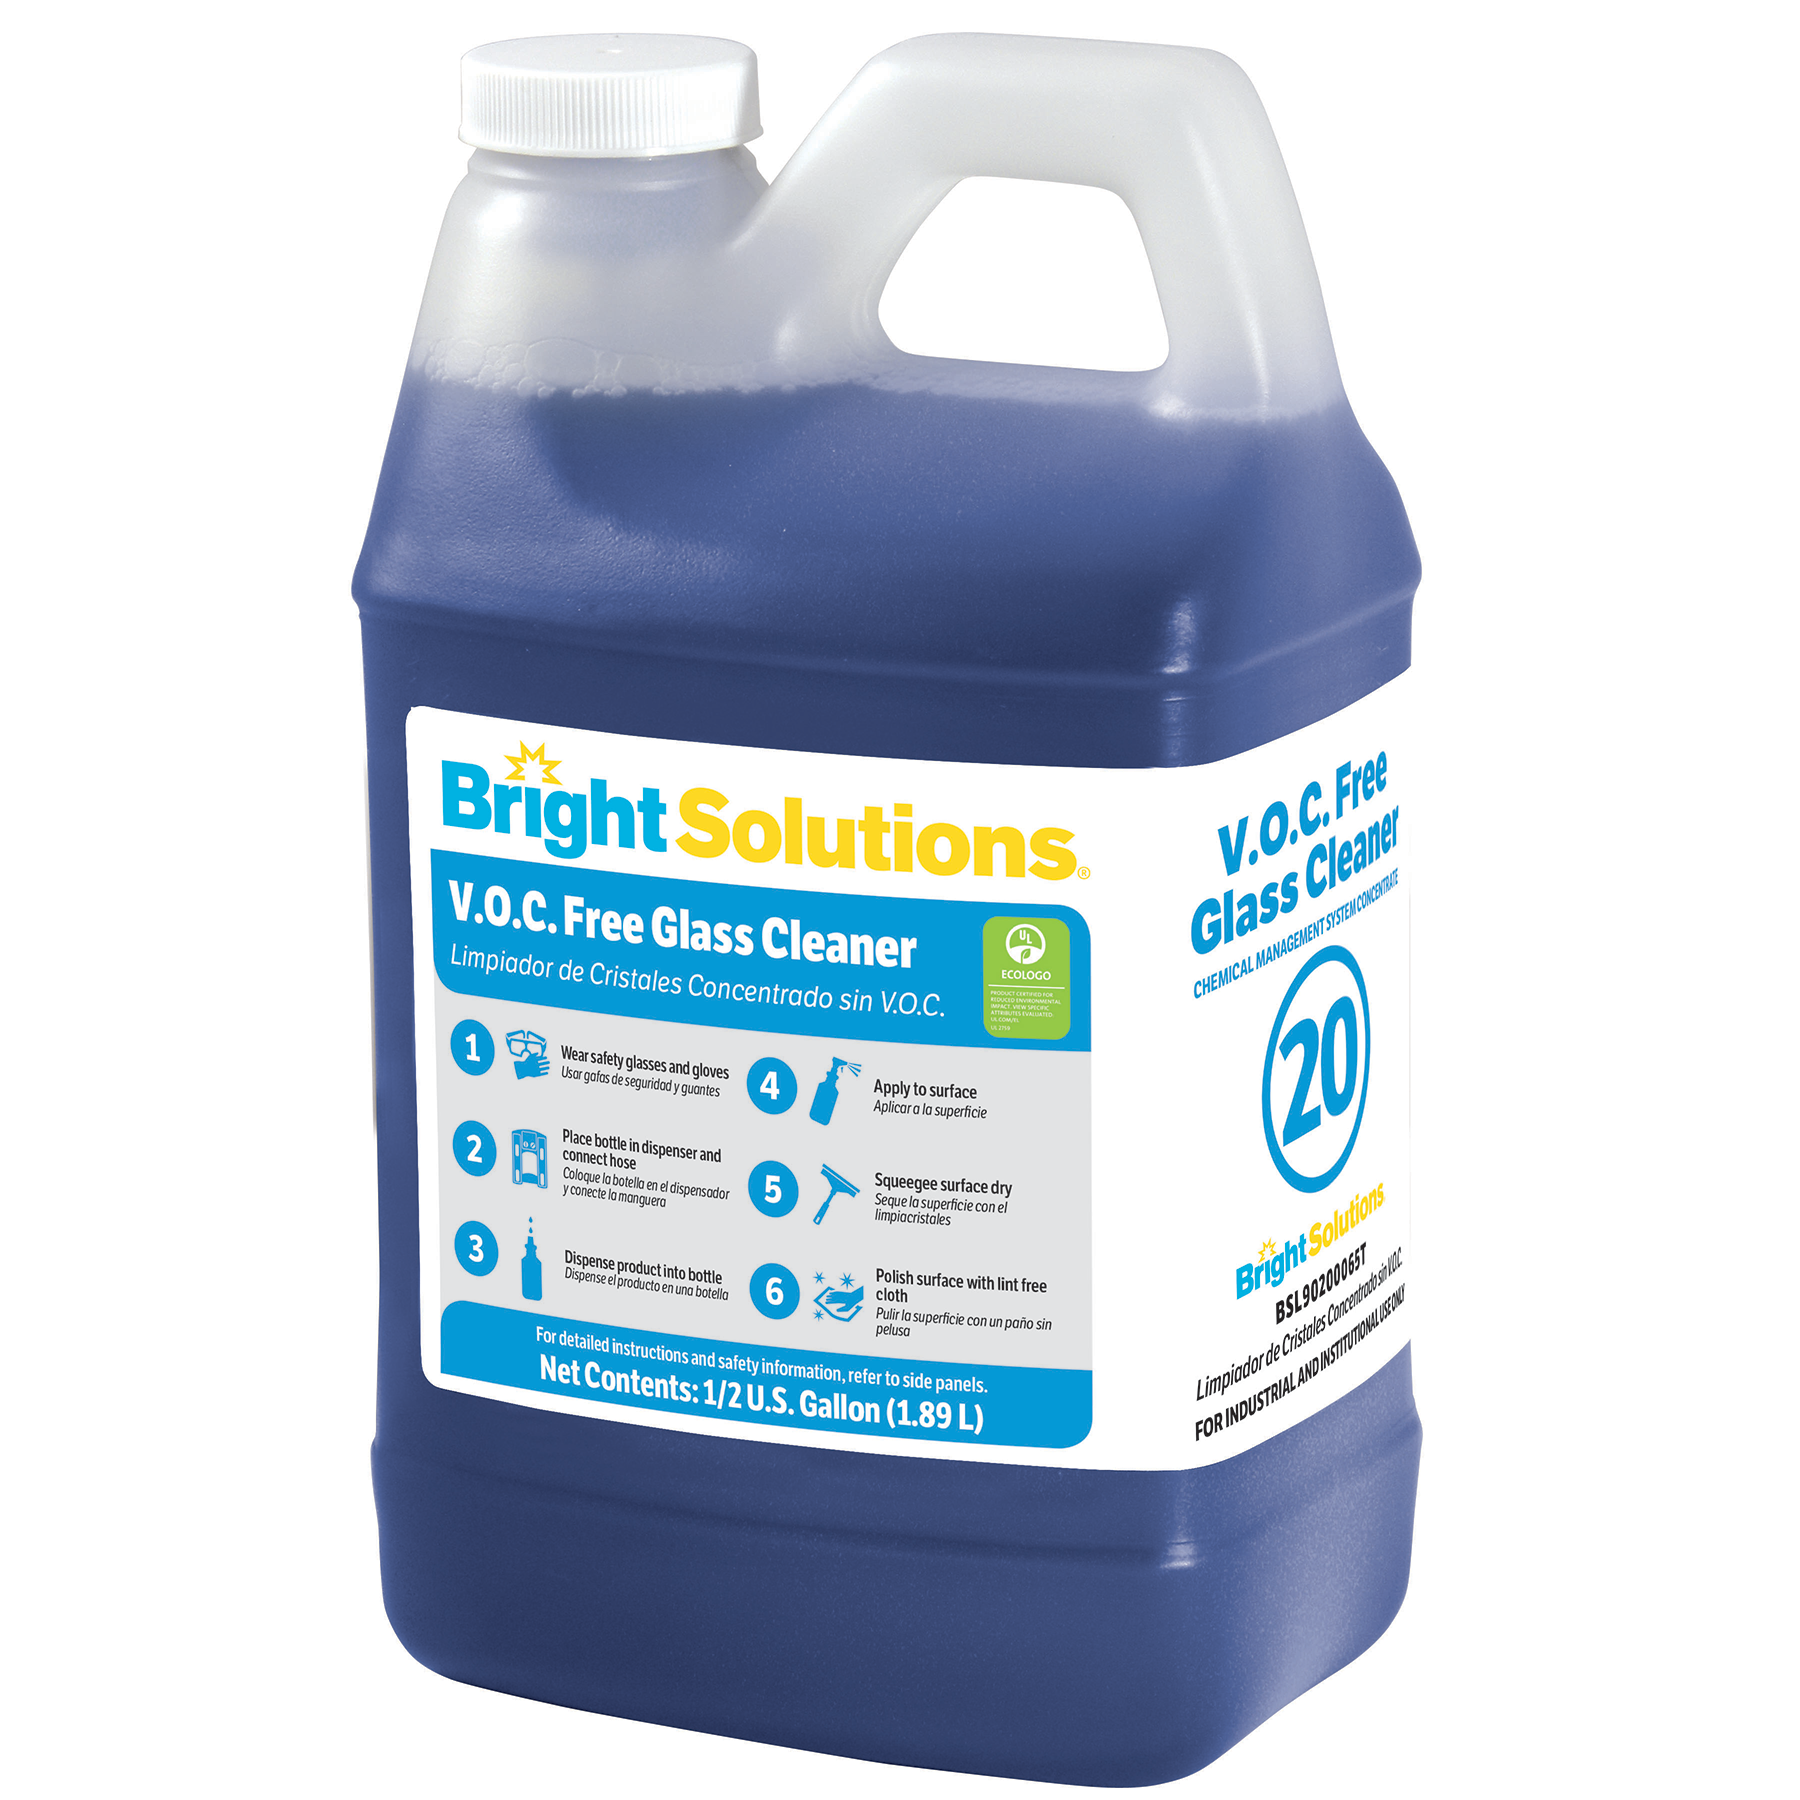 Bright Solutions® V.O.C. Free Glass Cleaner #20 - 4/64oz